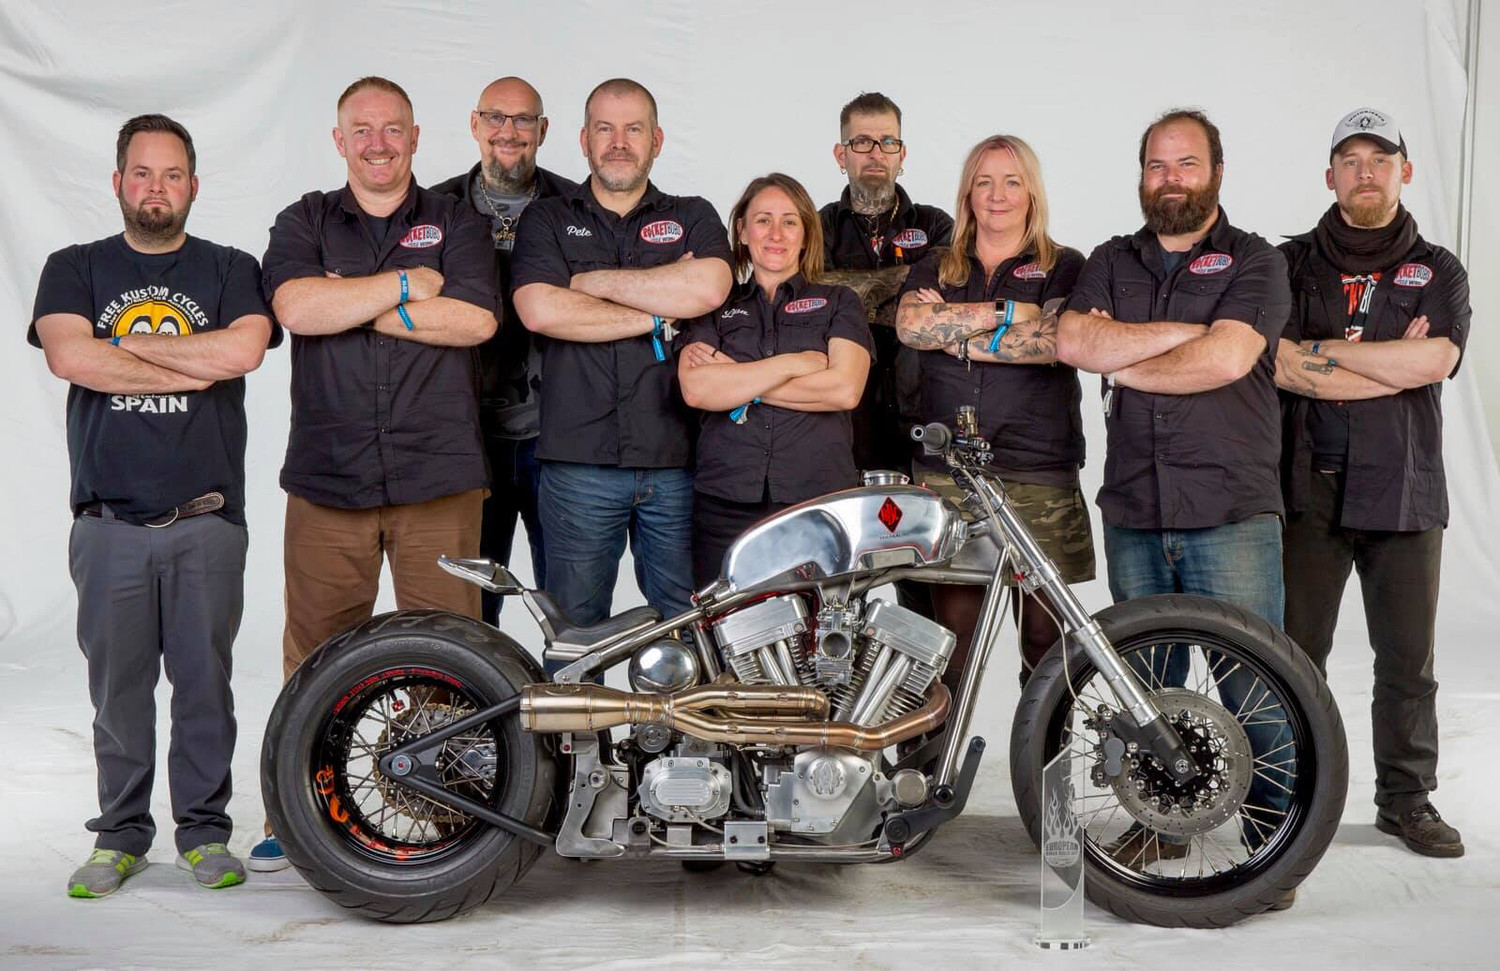 Custombike 2018 Biker Build Off team